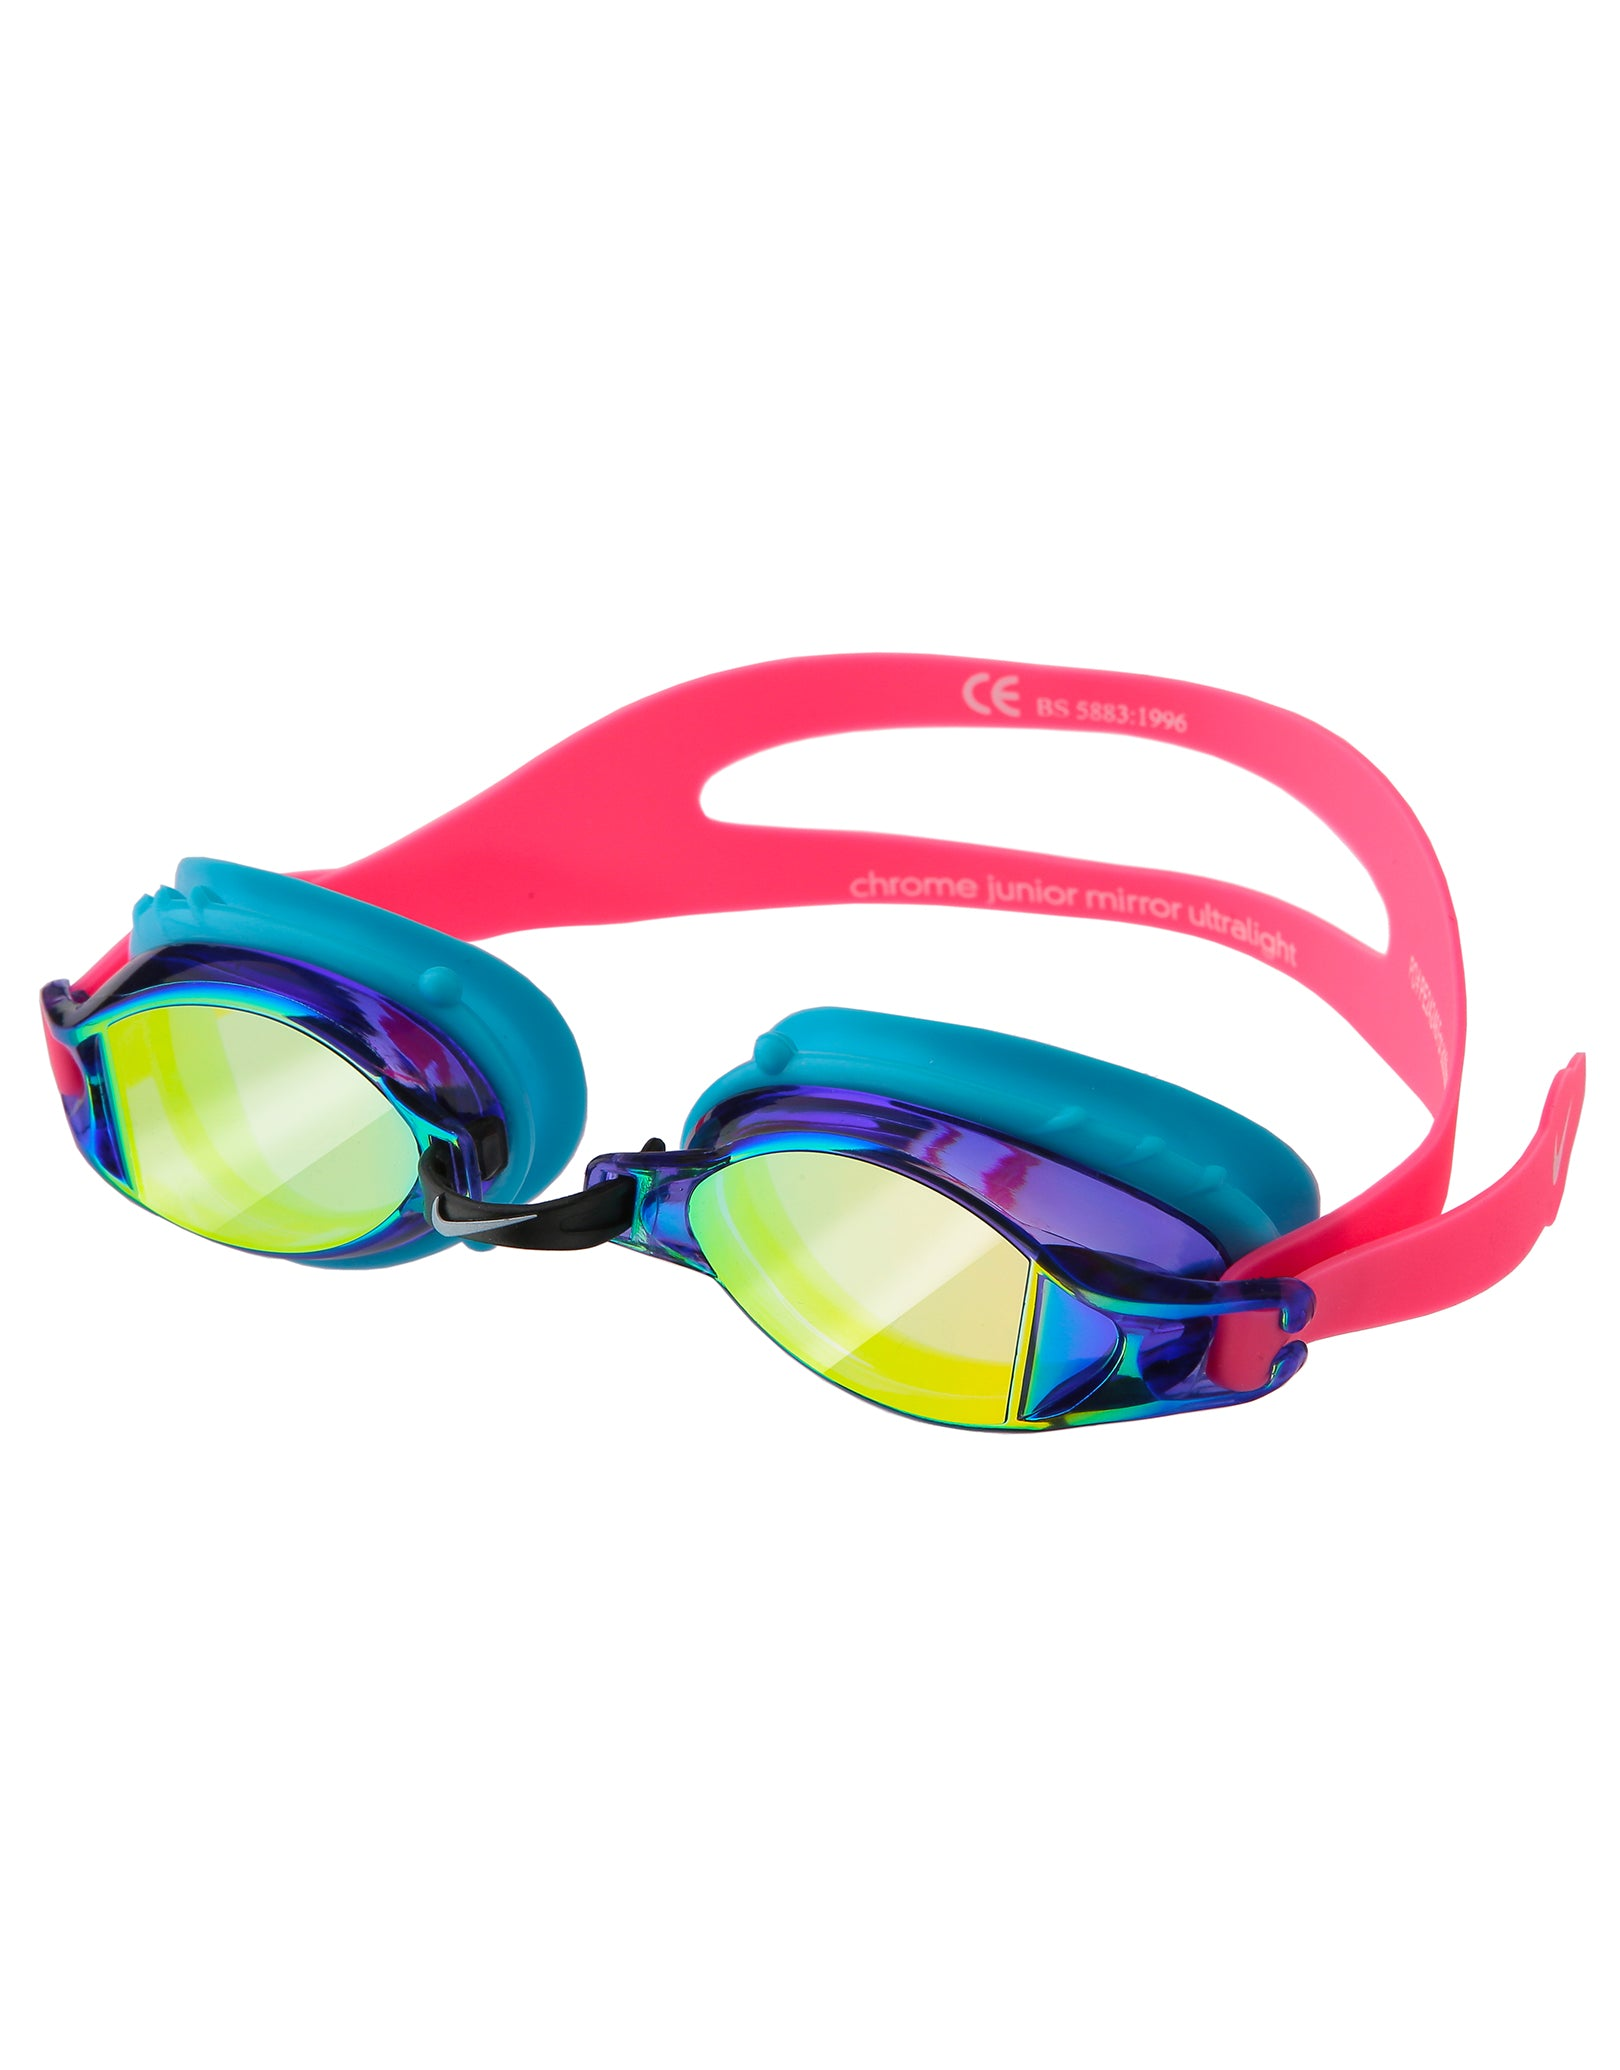 9ba3bef5df43 ... Nike Junior Chrome Mirror Goggle - Racer Pink